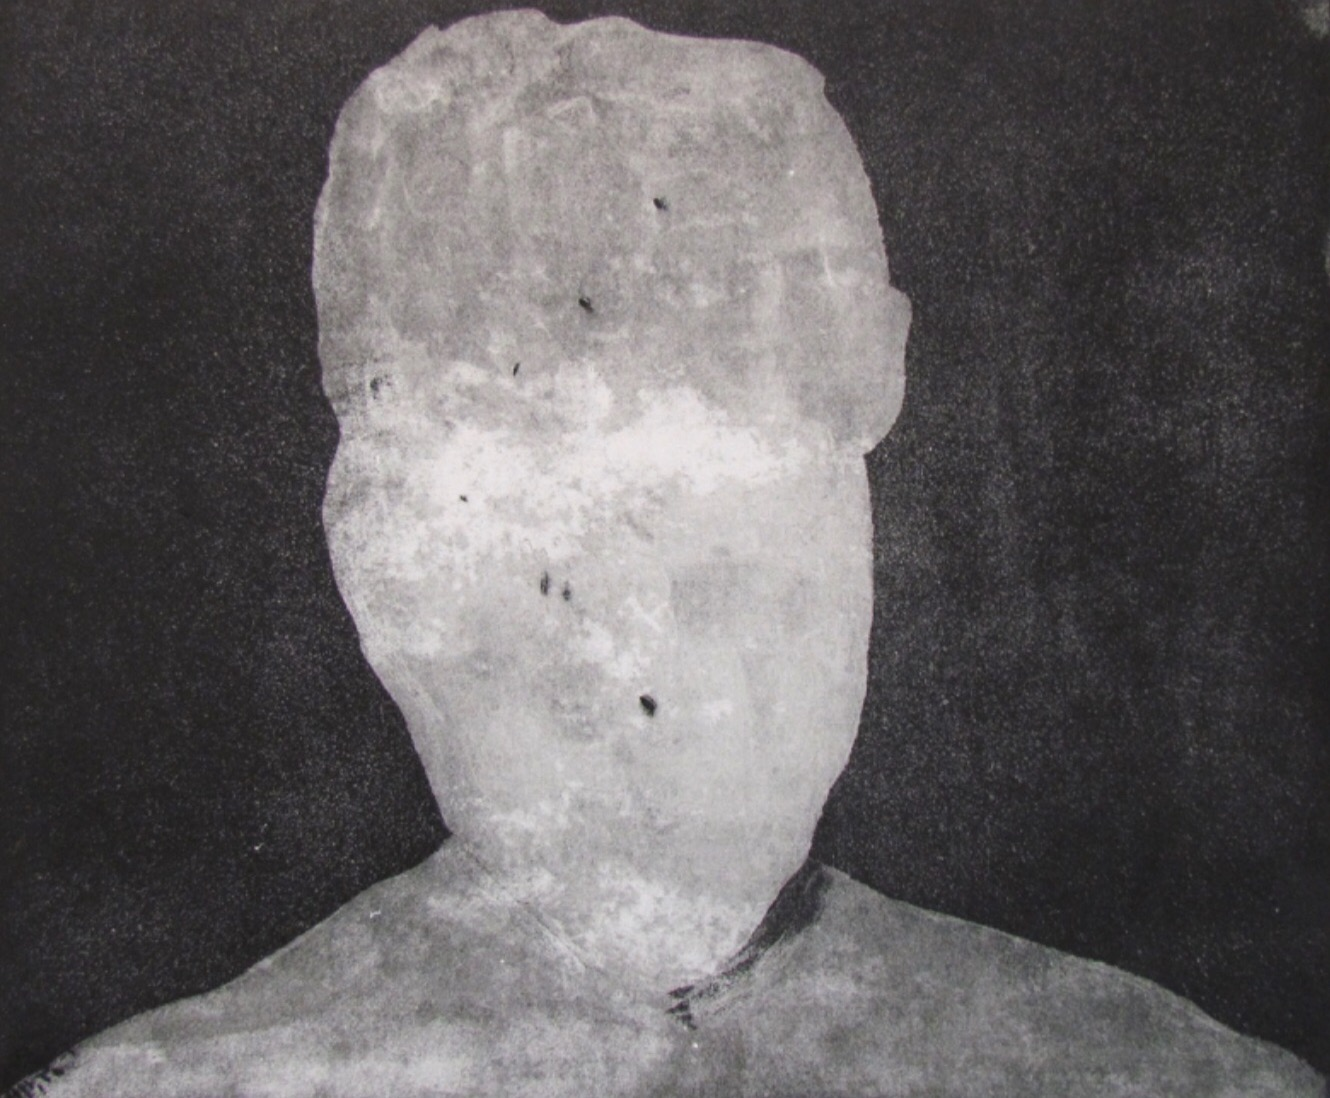 """Untitled   Etching, aquatint, white ground on paper  18x24"""" image area  2014"""